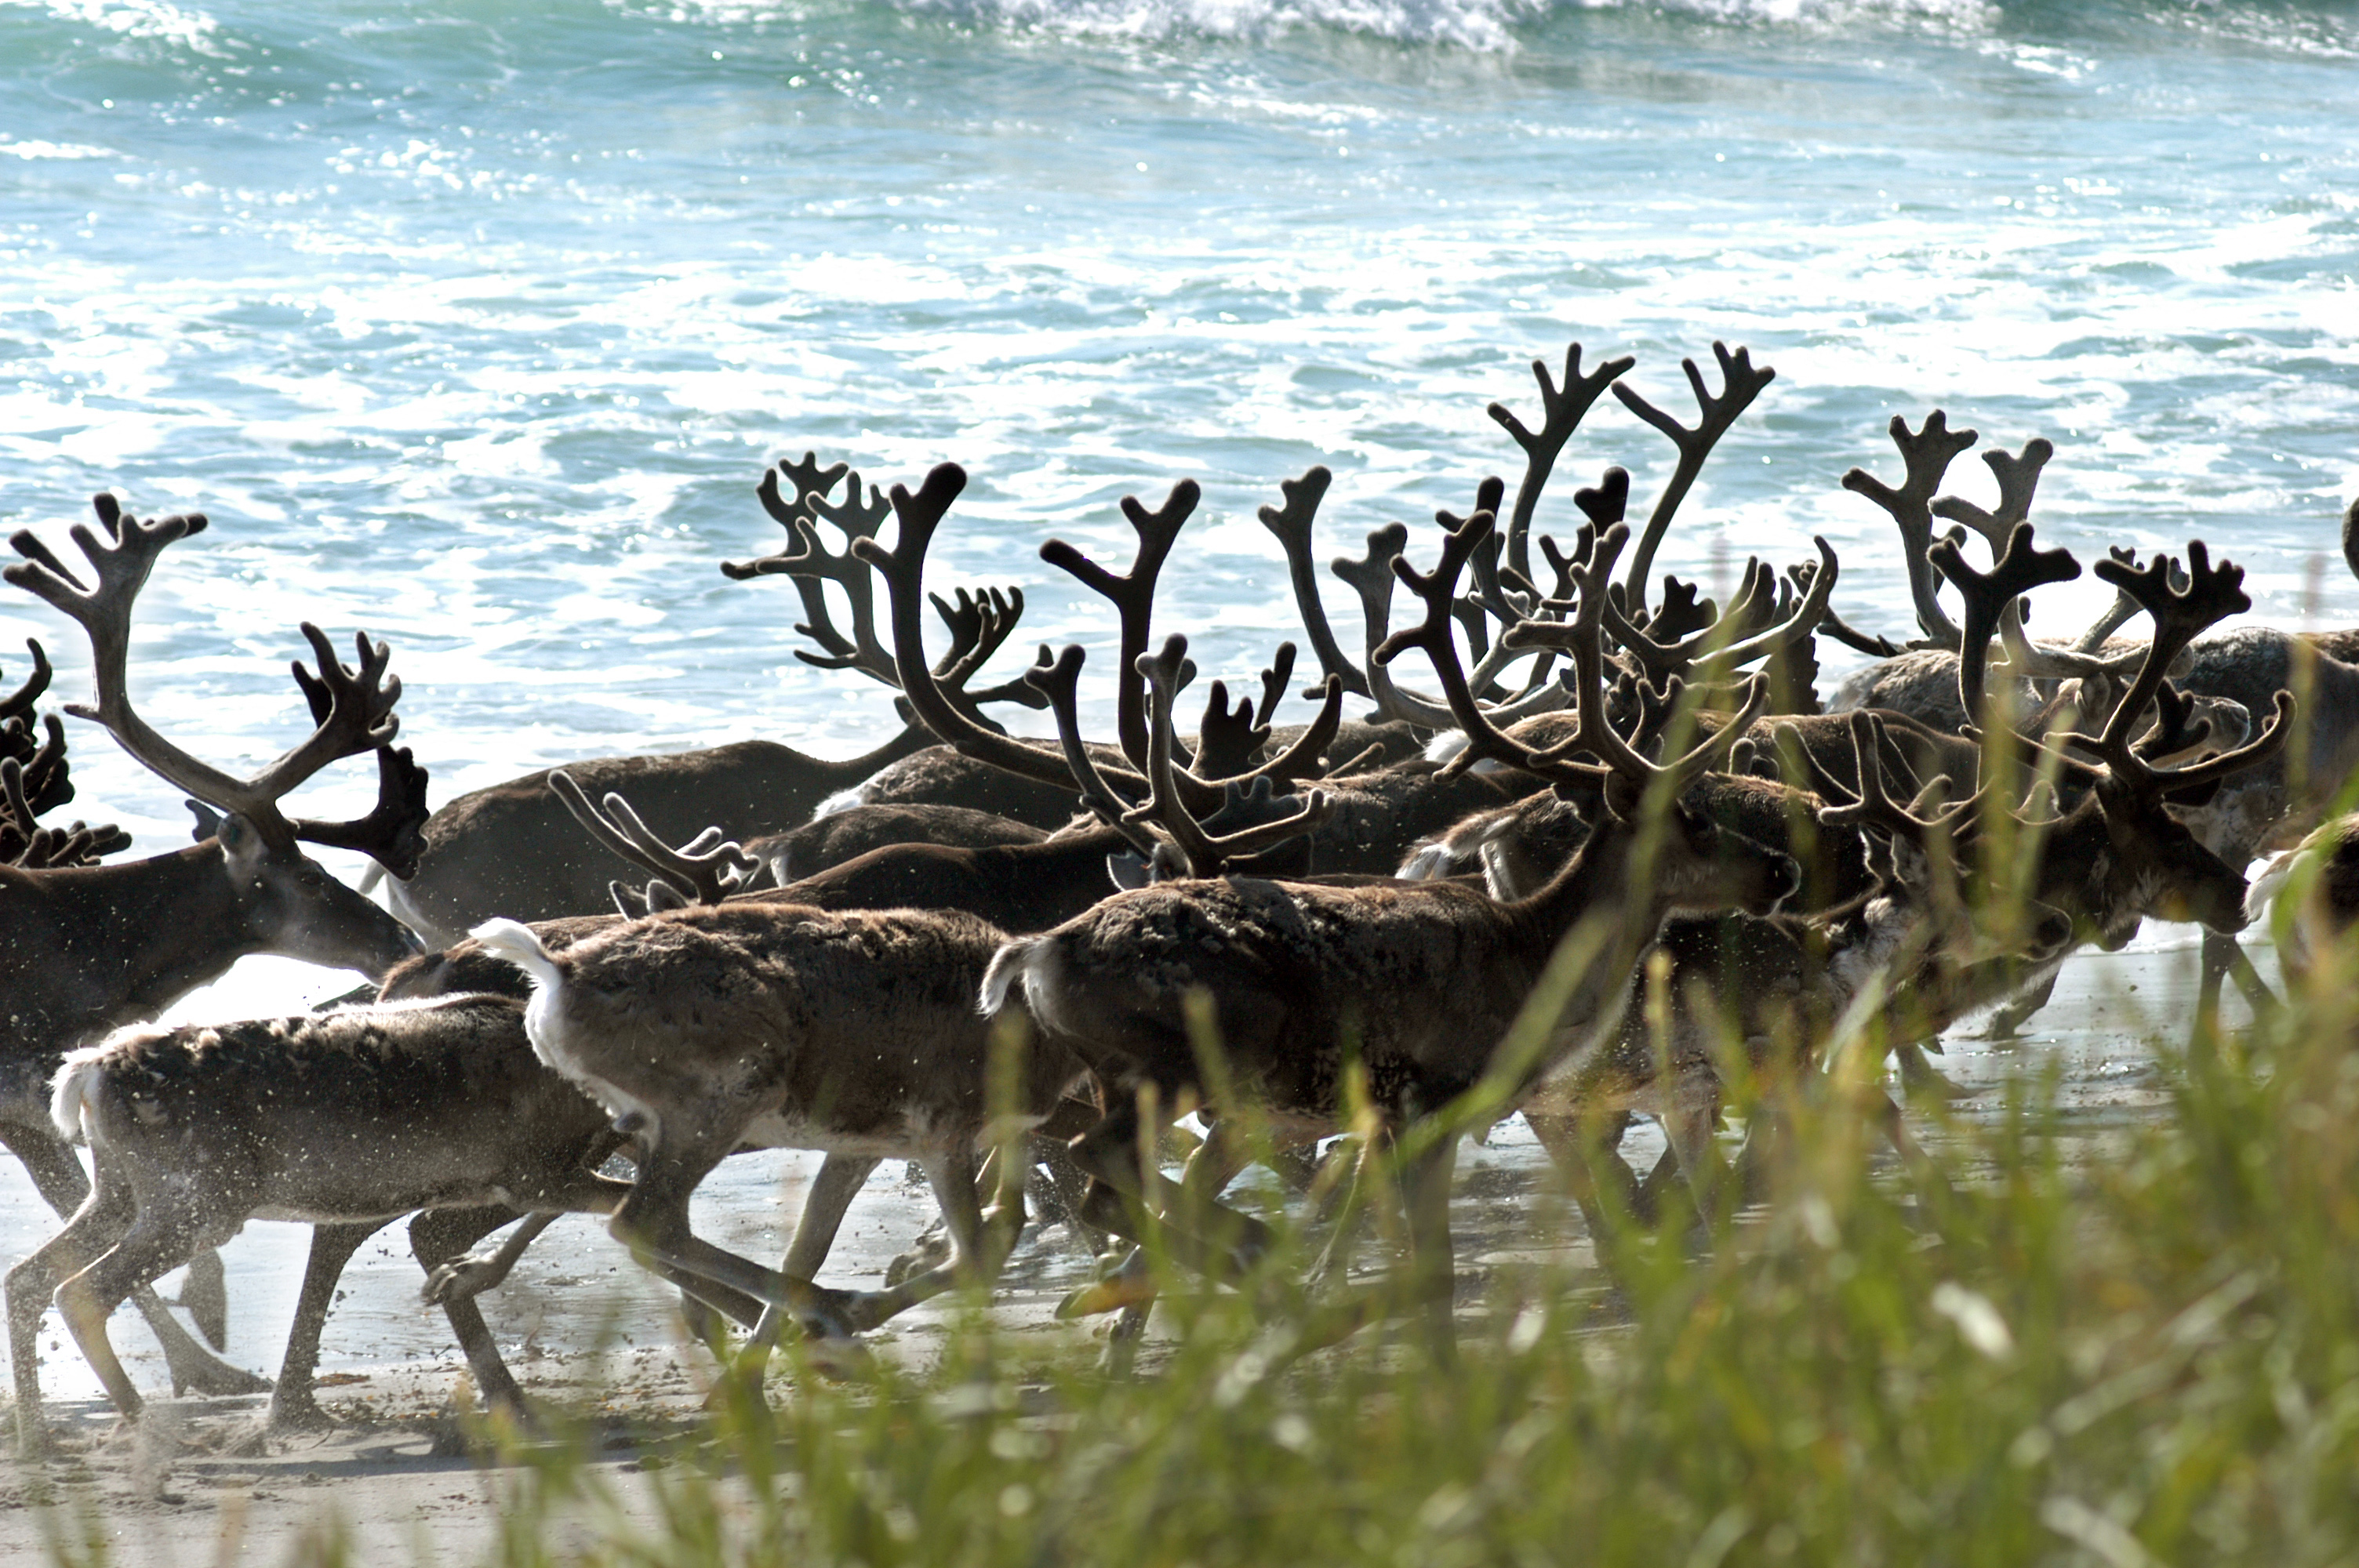 A reindeer herd walks on the beach in Jarfjord, Norway. (Thomas Nilsen/AFP/Getty Images)